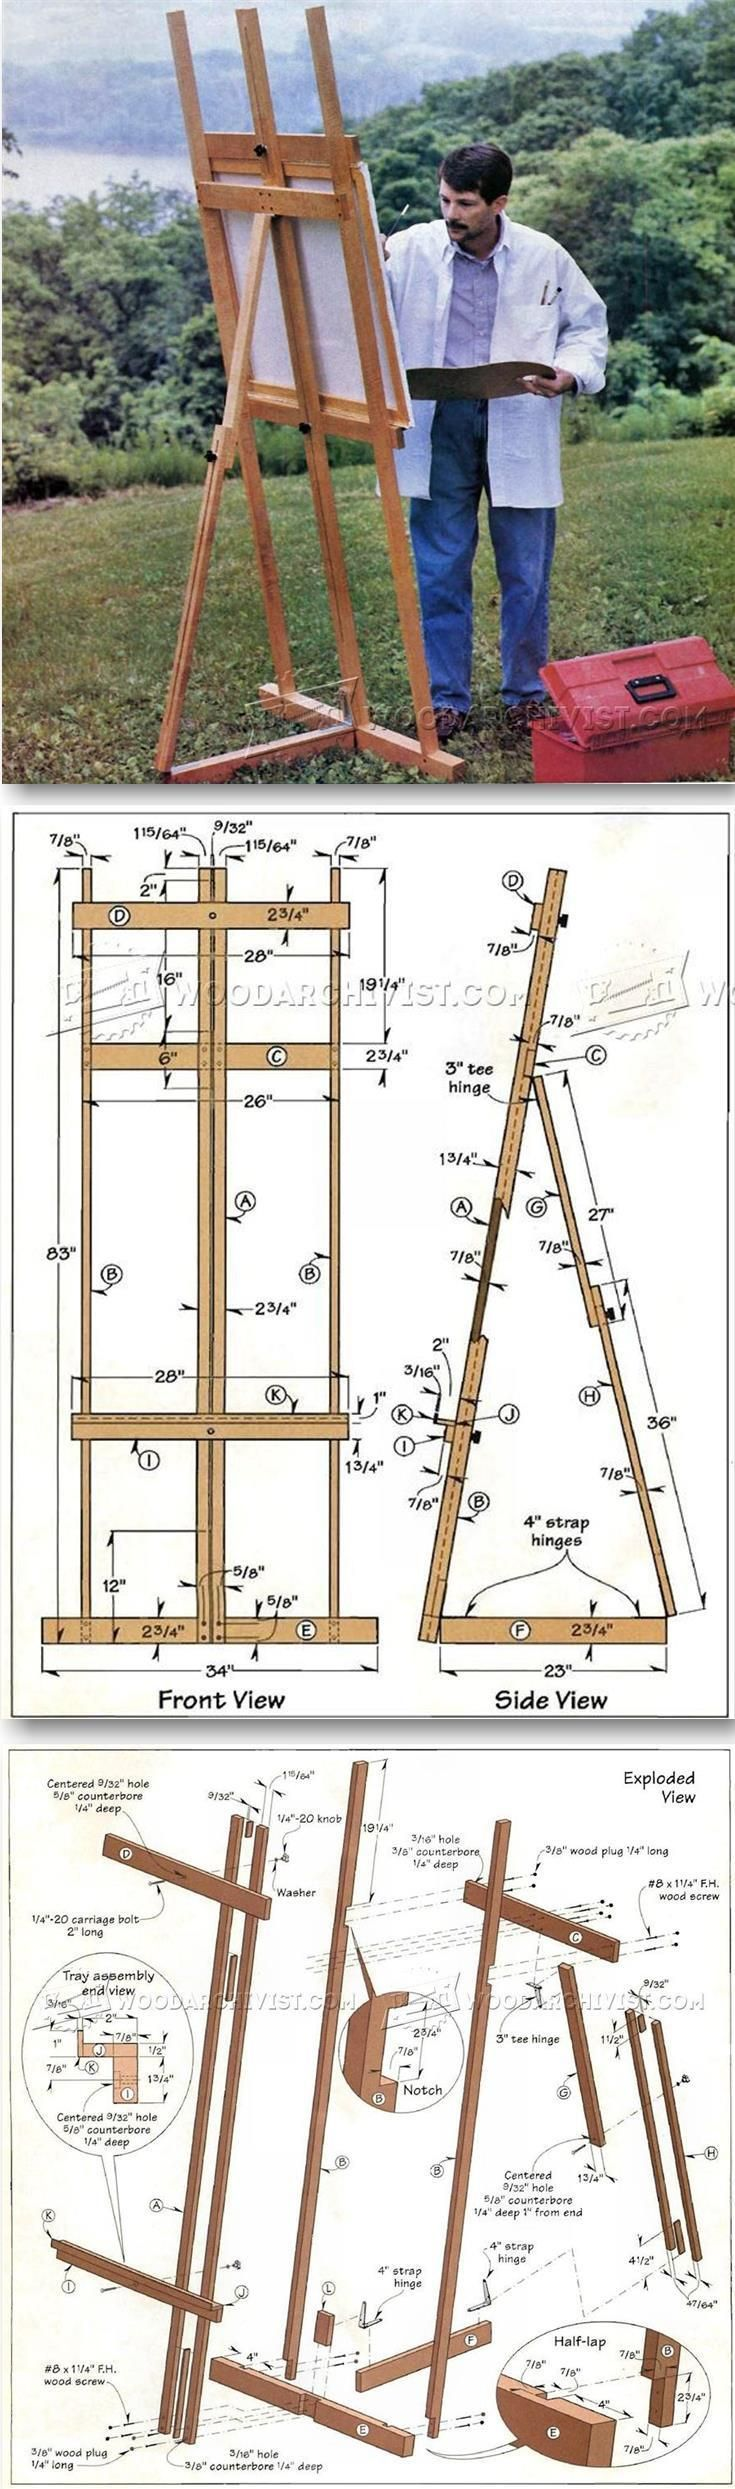 DIY Art Easel - Woodworking Plans and Projects   http://WoodArchivist.com